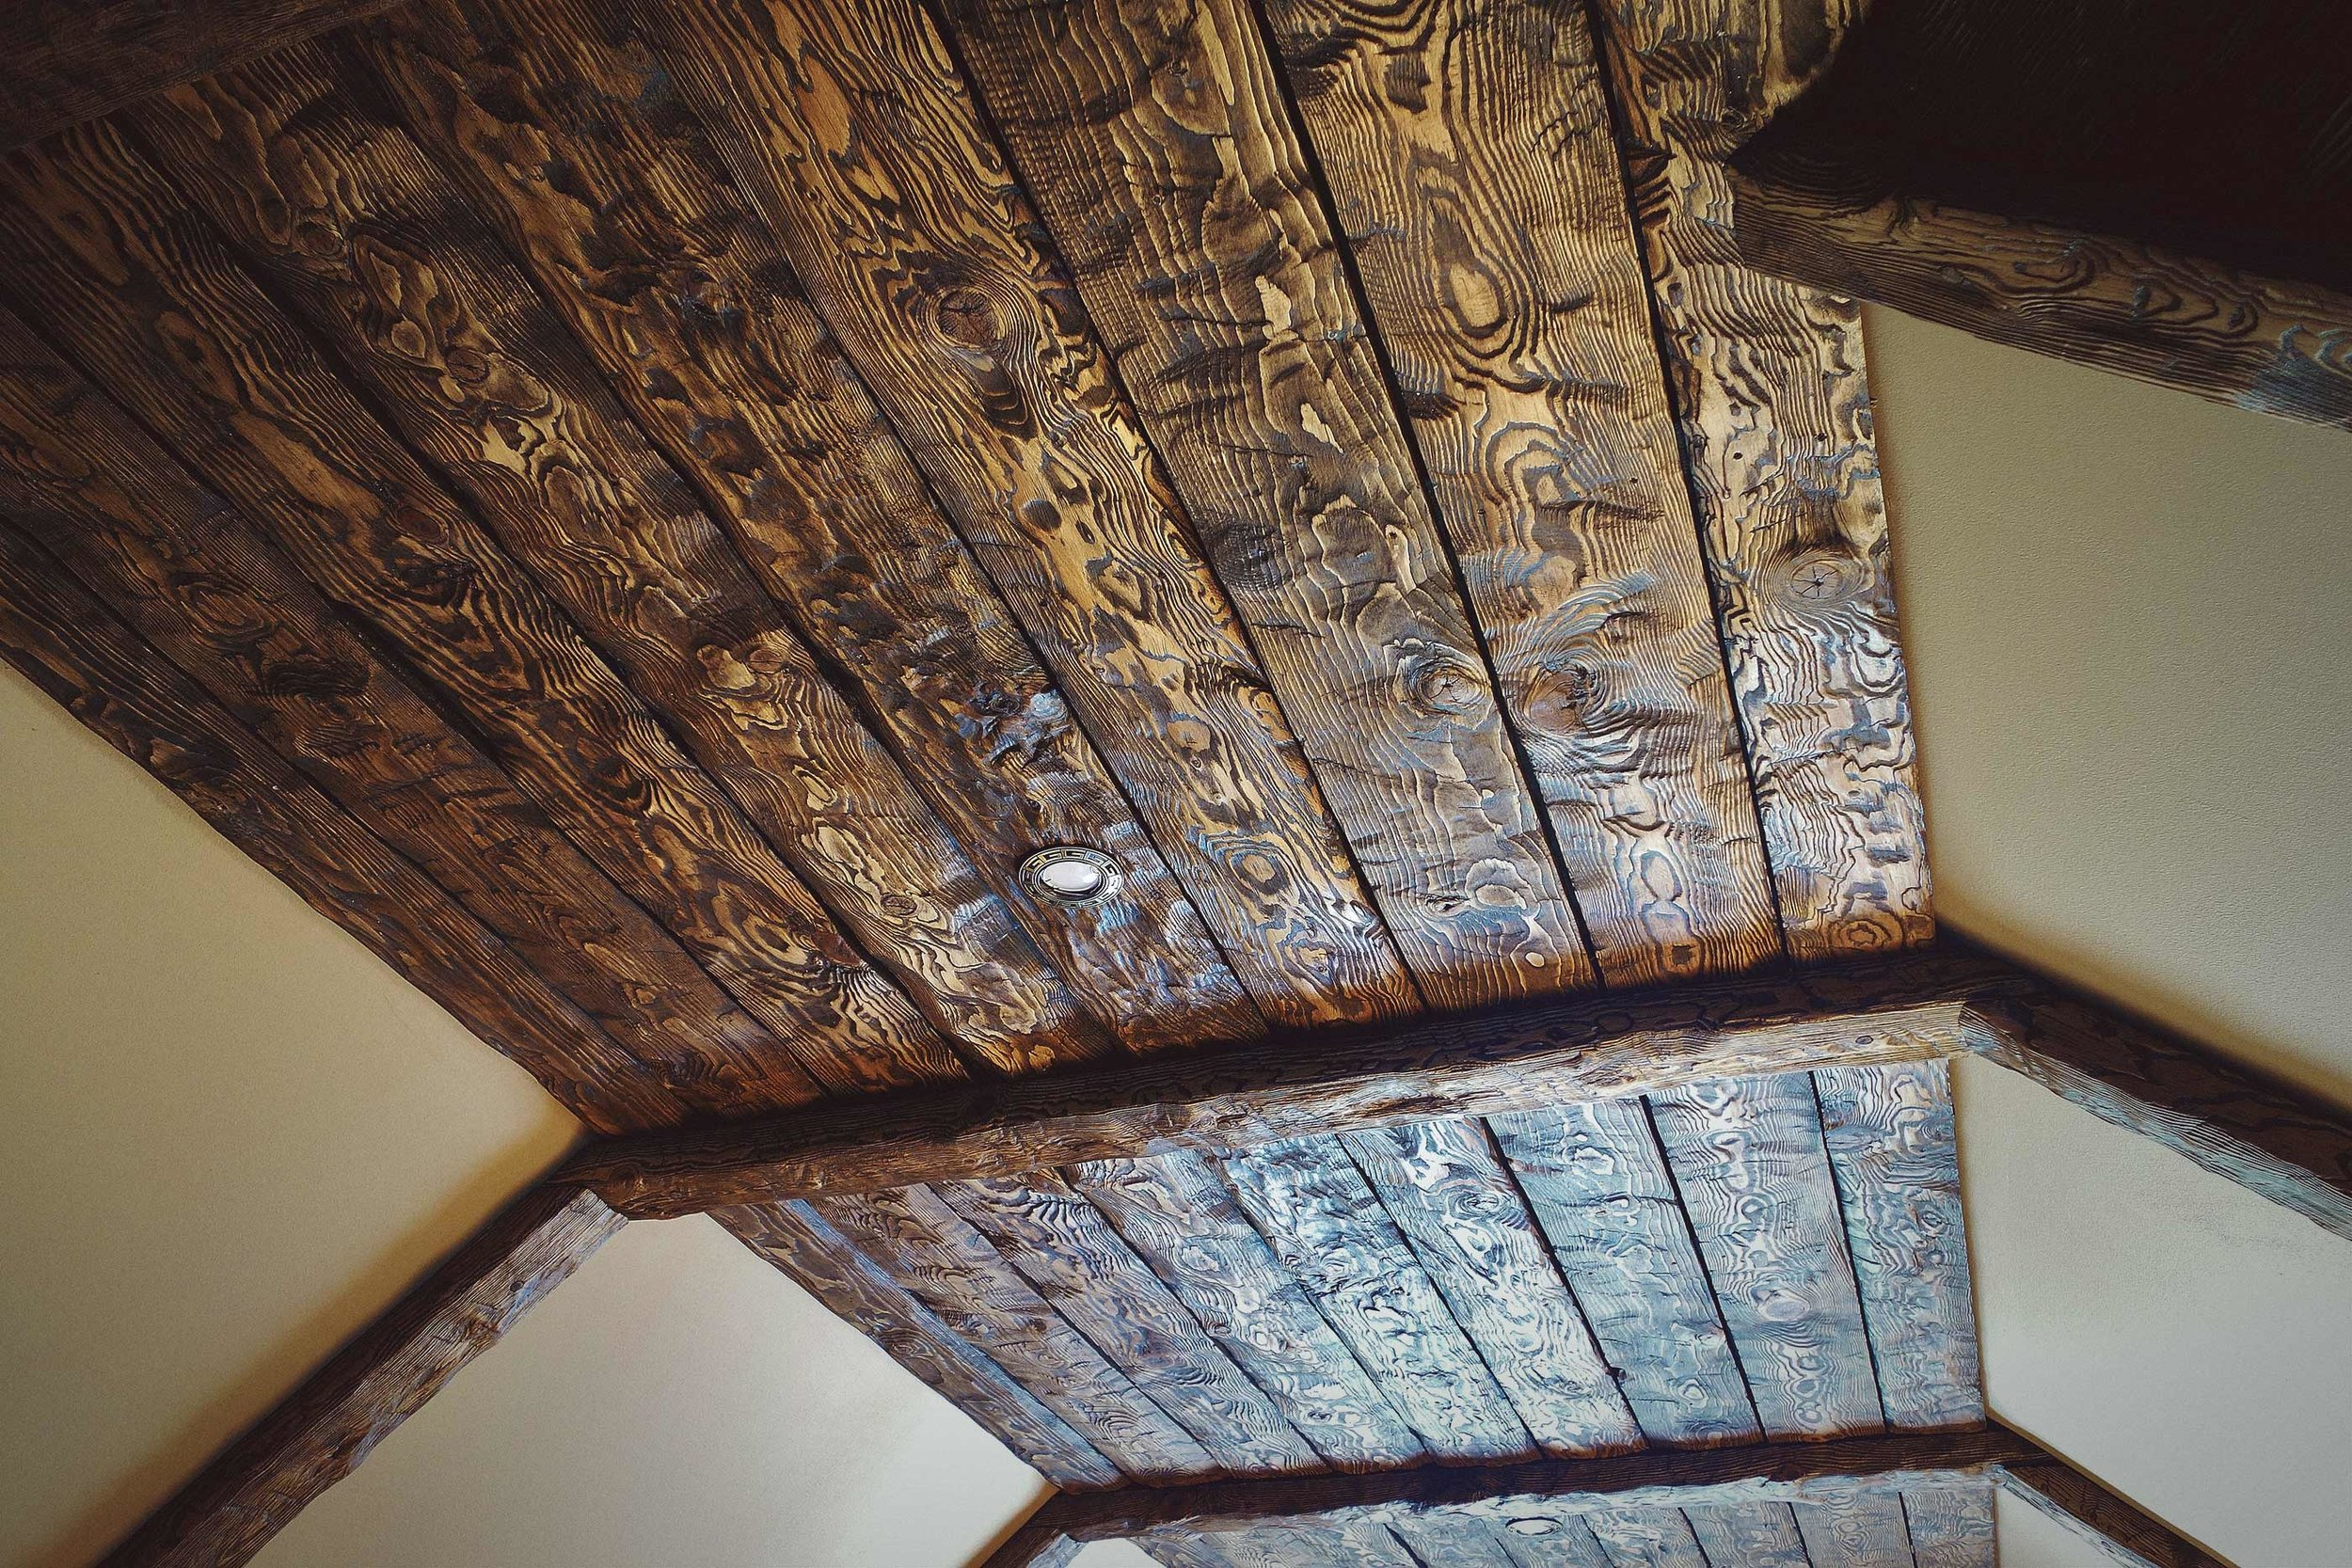 rwood-wooden-ceiling.jpg